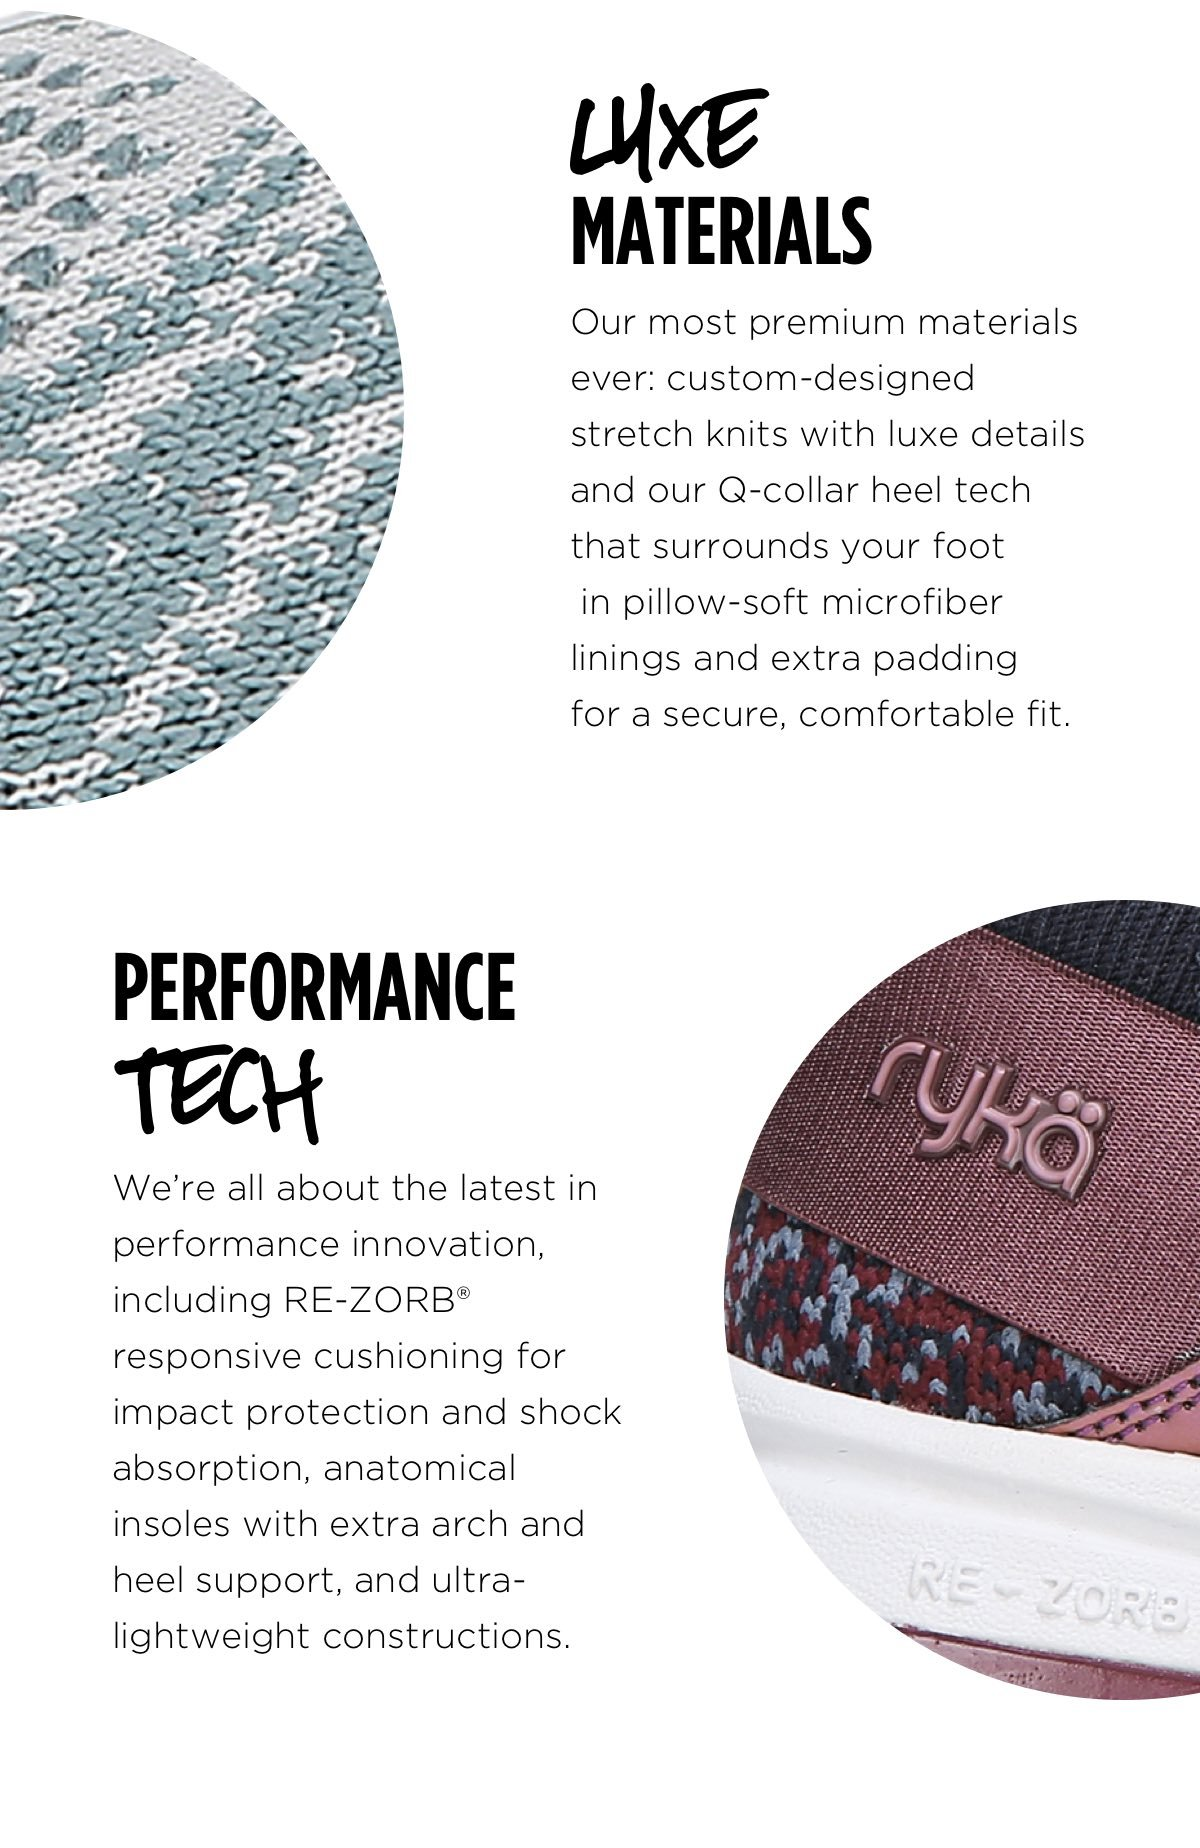 Premium materials and latests in performance innovation